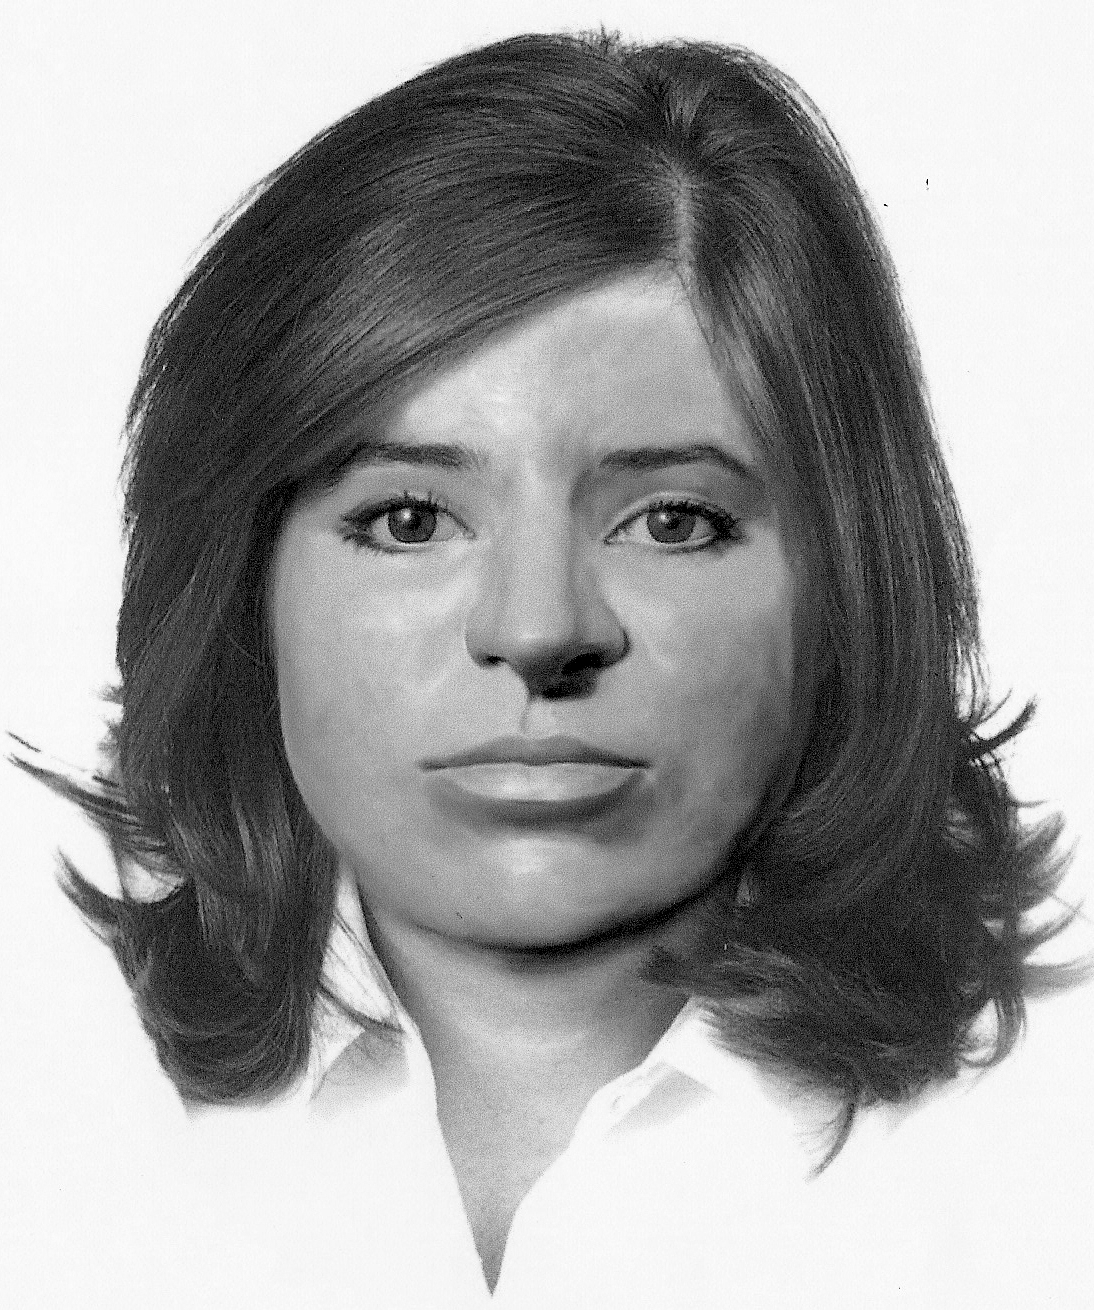 Calcasieu Parish Jane Doe (1991)